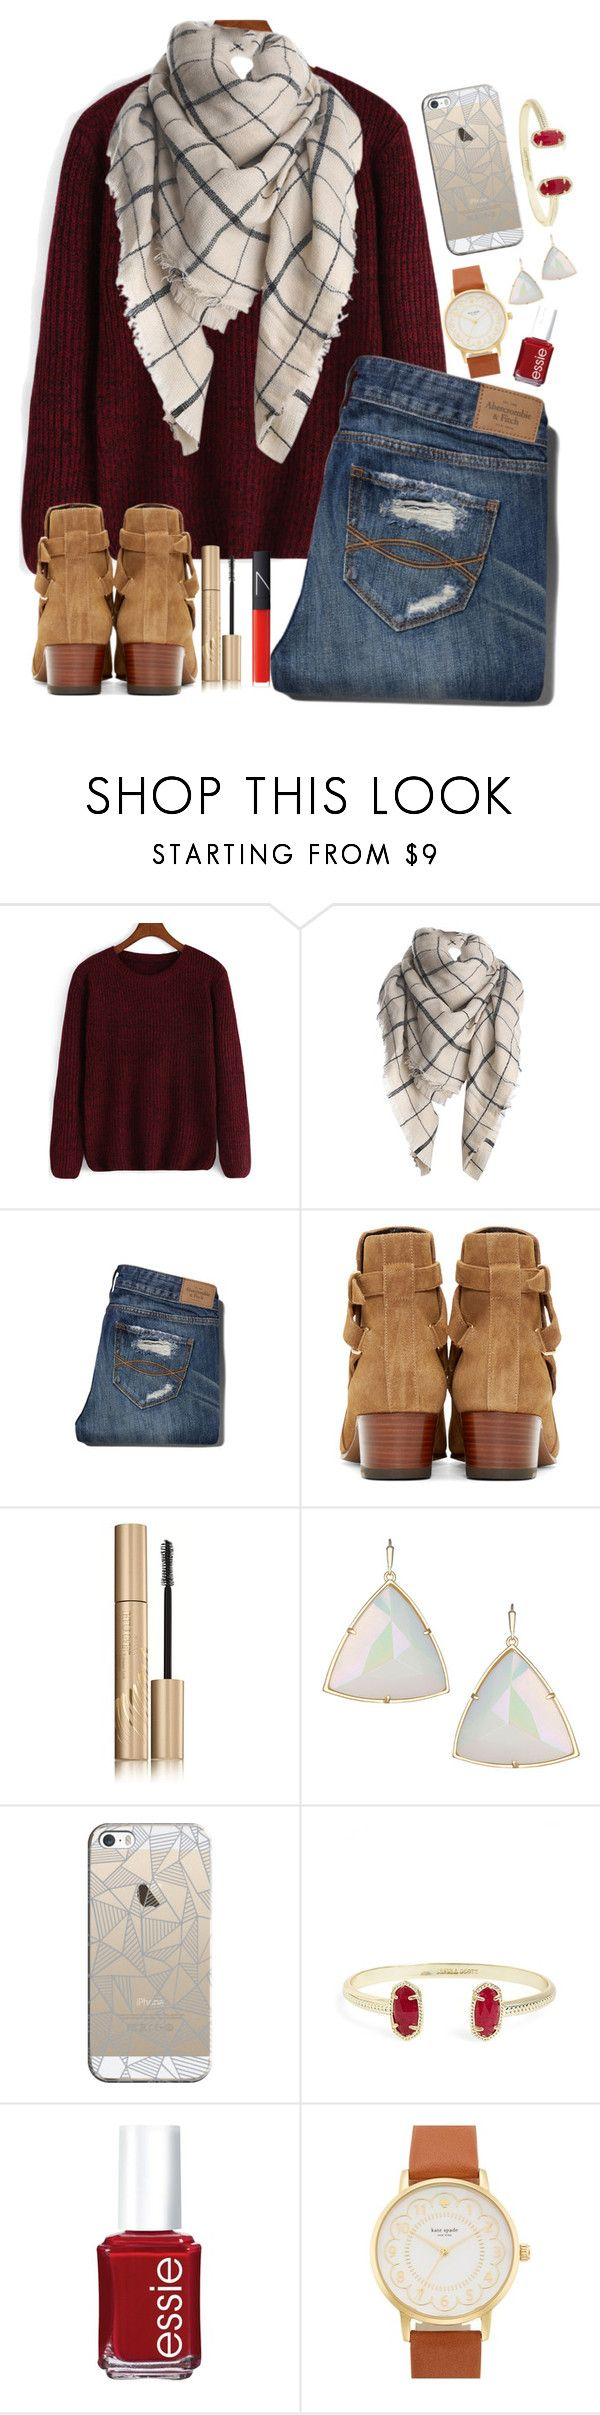 """Untitled #113"" by hgw8503 ❤ liked on Polyvore featuring Abercrombie & Fitch, Yves Saint Laurent, Stila, Kendra Scott, Casetify, Essie, Kate Spade and NARS Cosmetics"